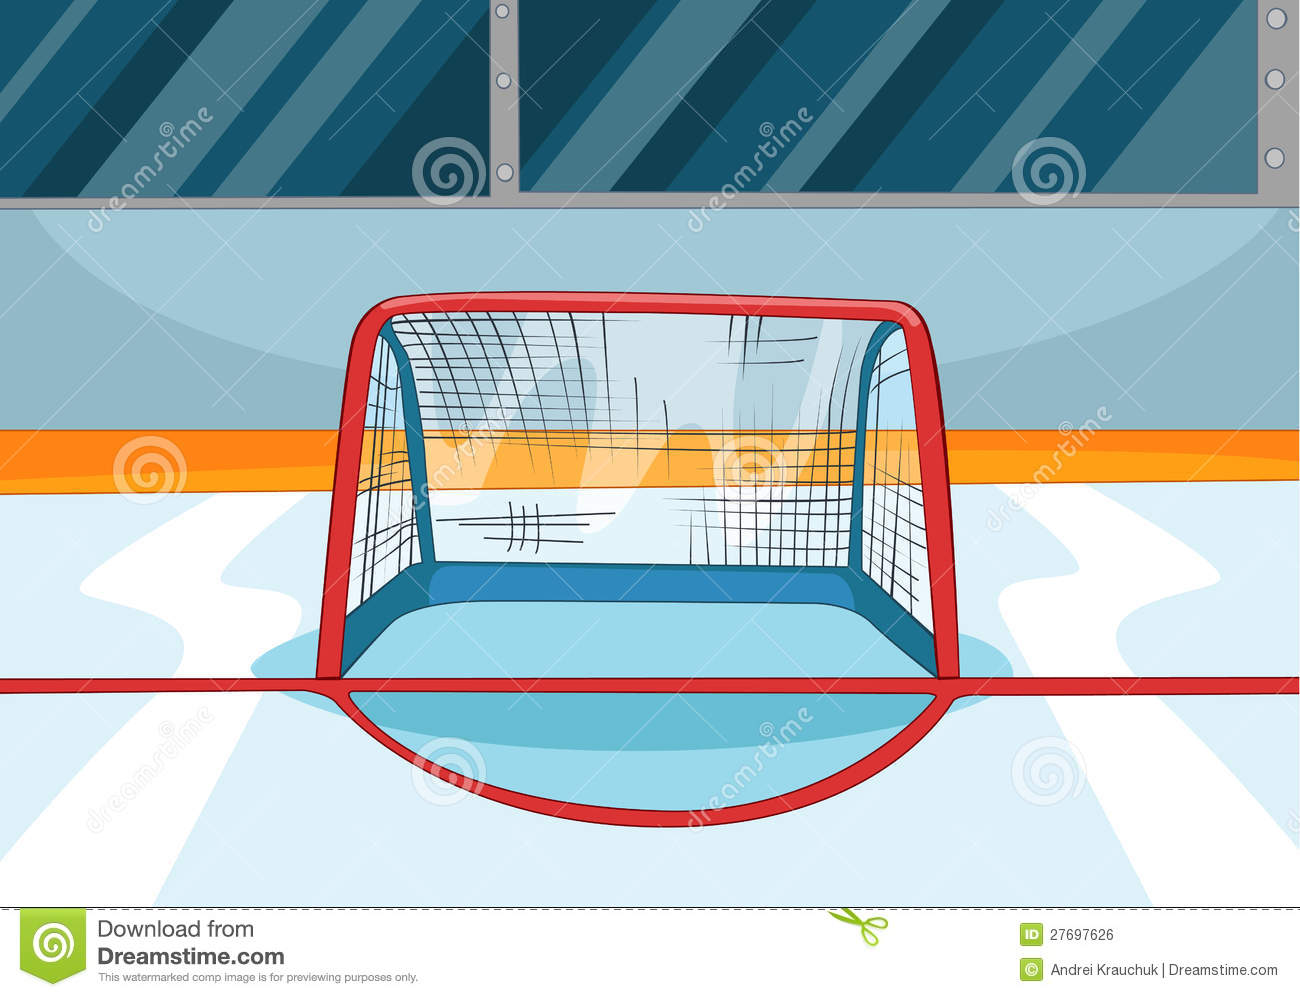 Hockey Rink Royalty Free Stock Image - Image: 27697626